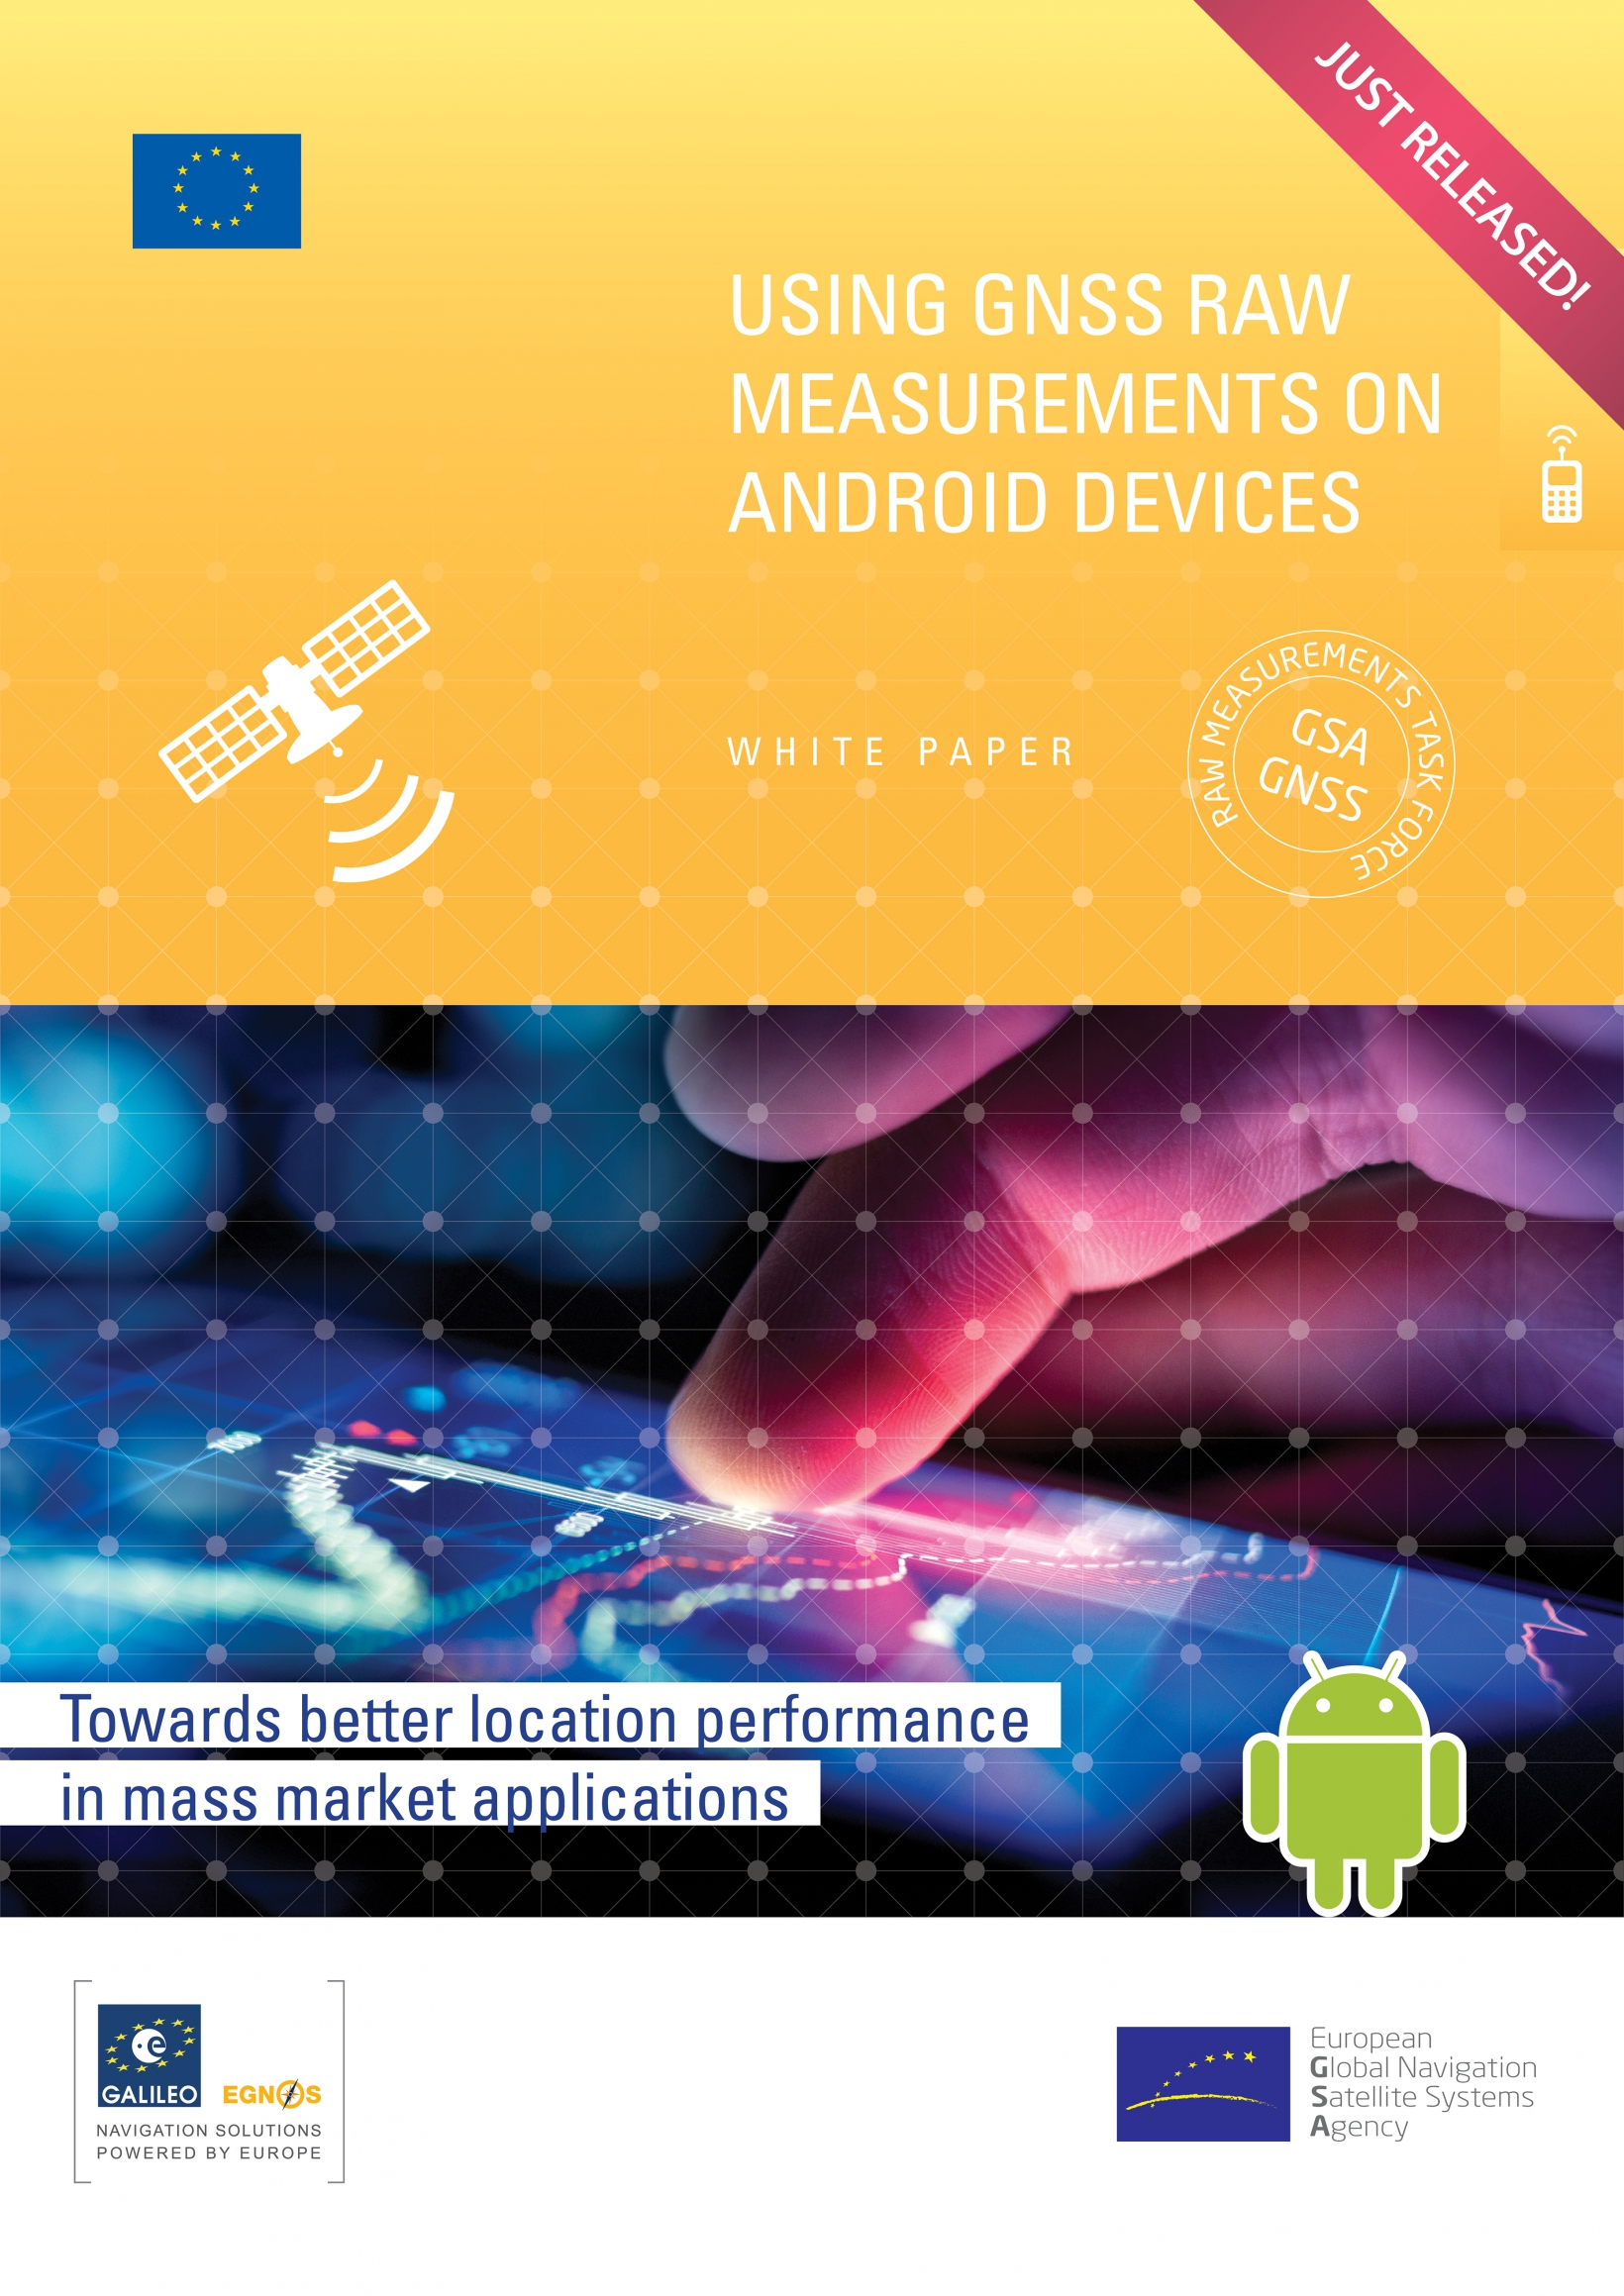 Available Now: White Paper on using GNSS Raw Measurements